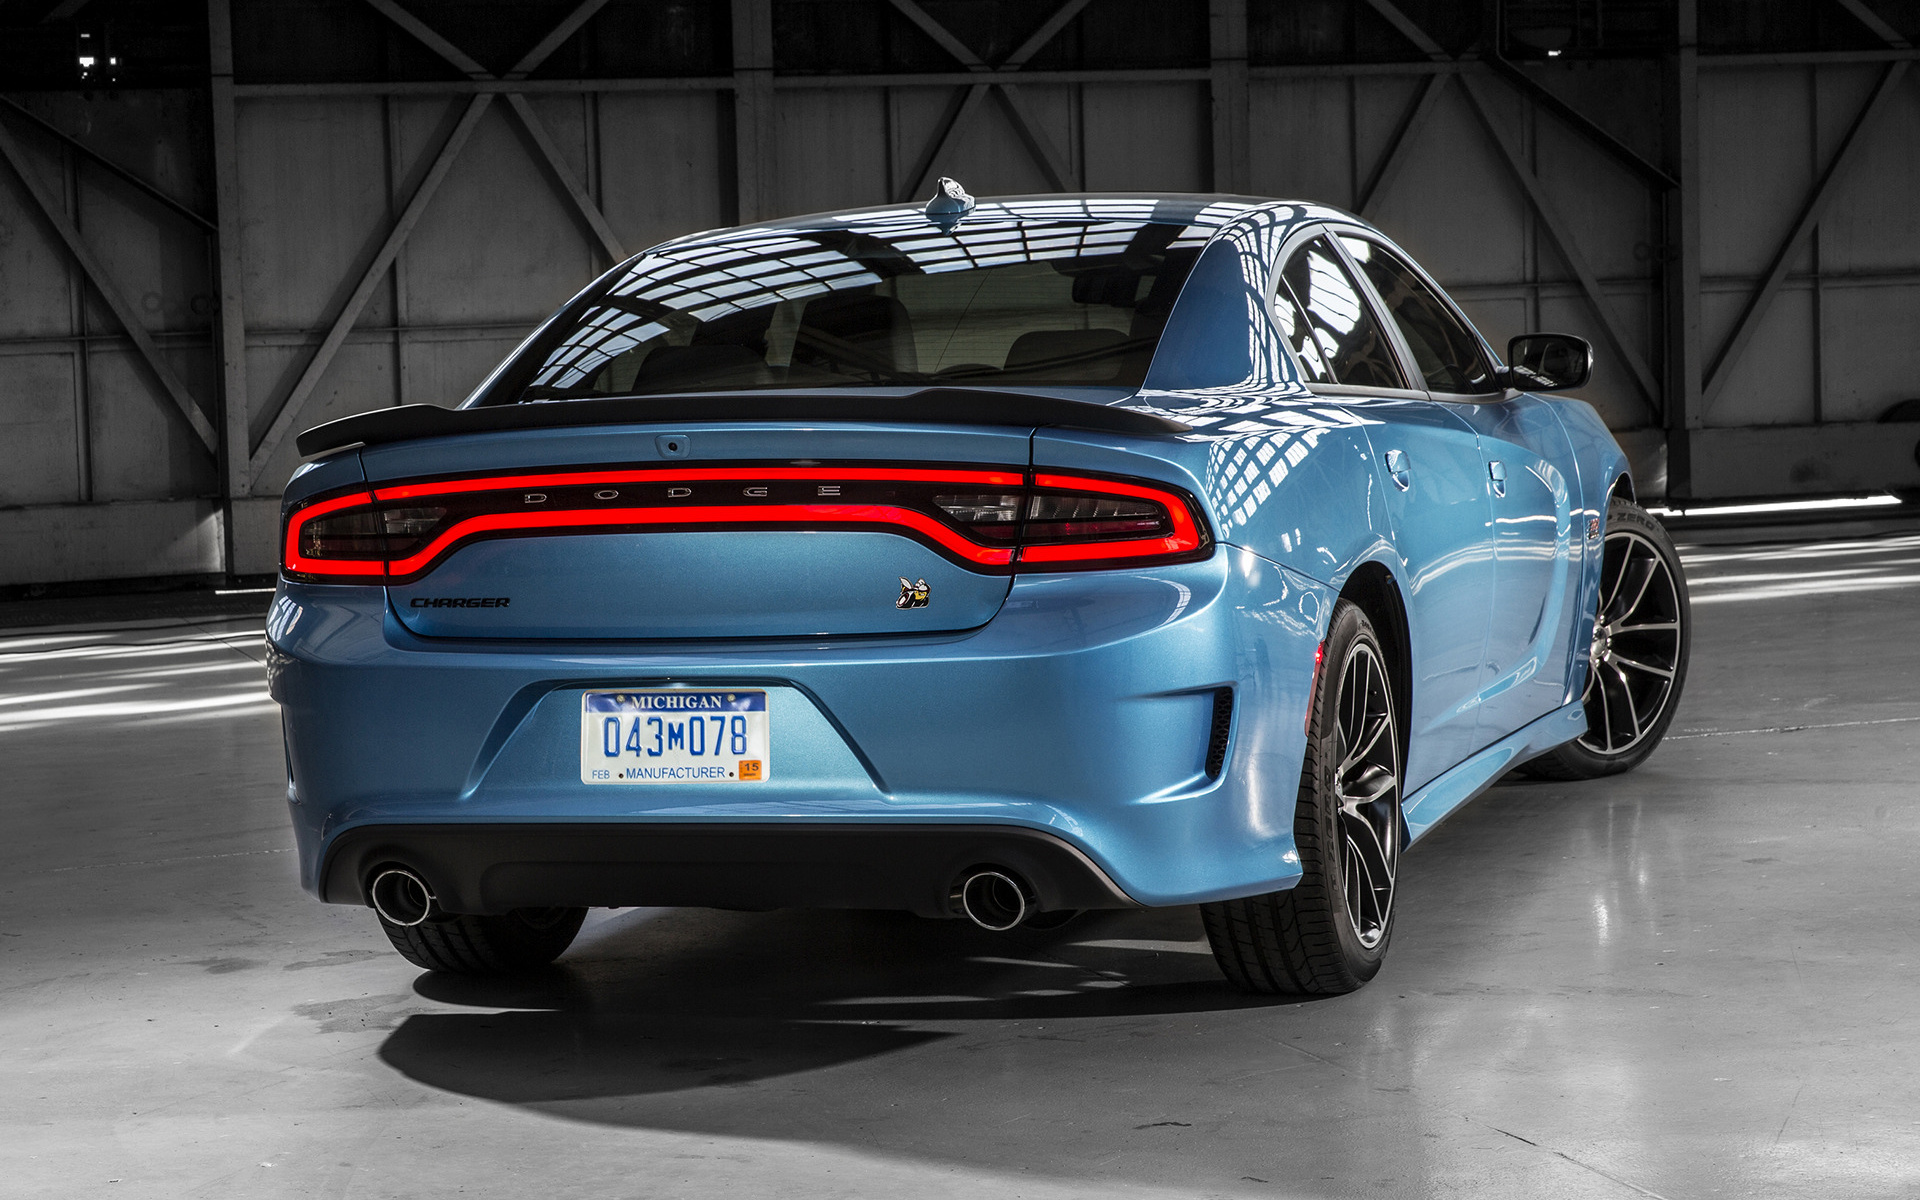 2015 Dodge Charger Rt Scat Pack Wallpapers And Hd Images Car Pixel